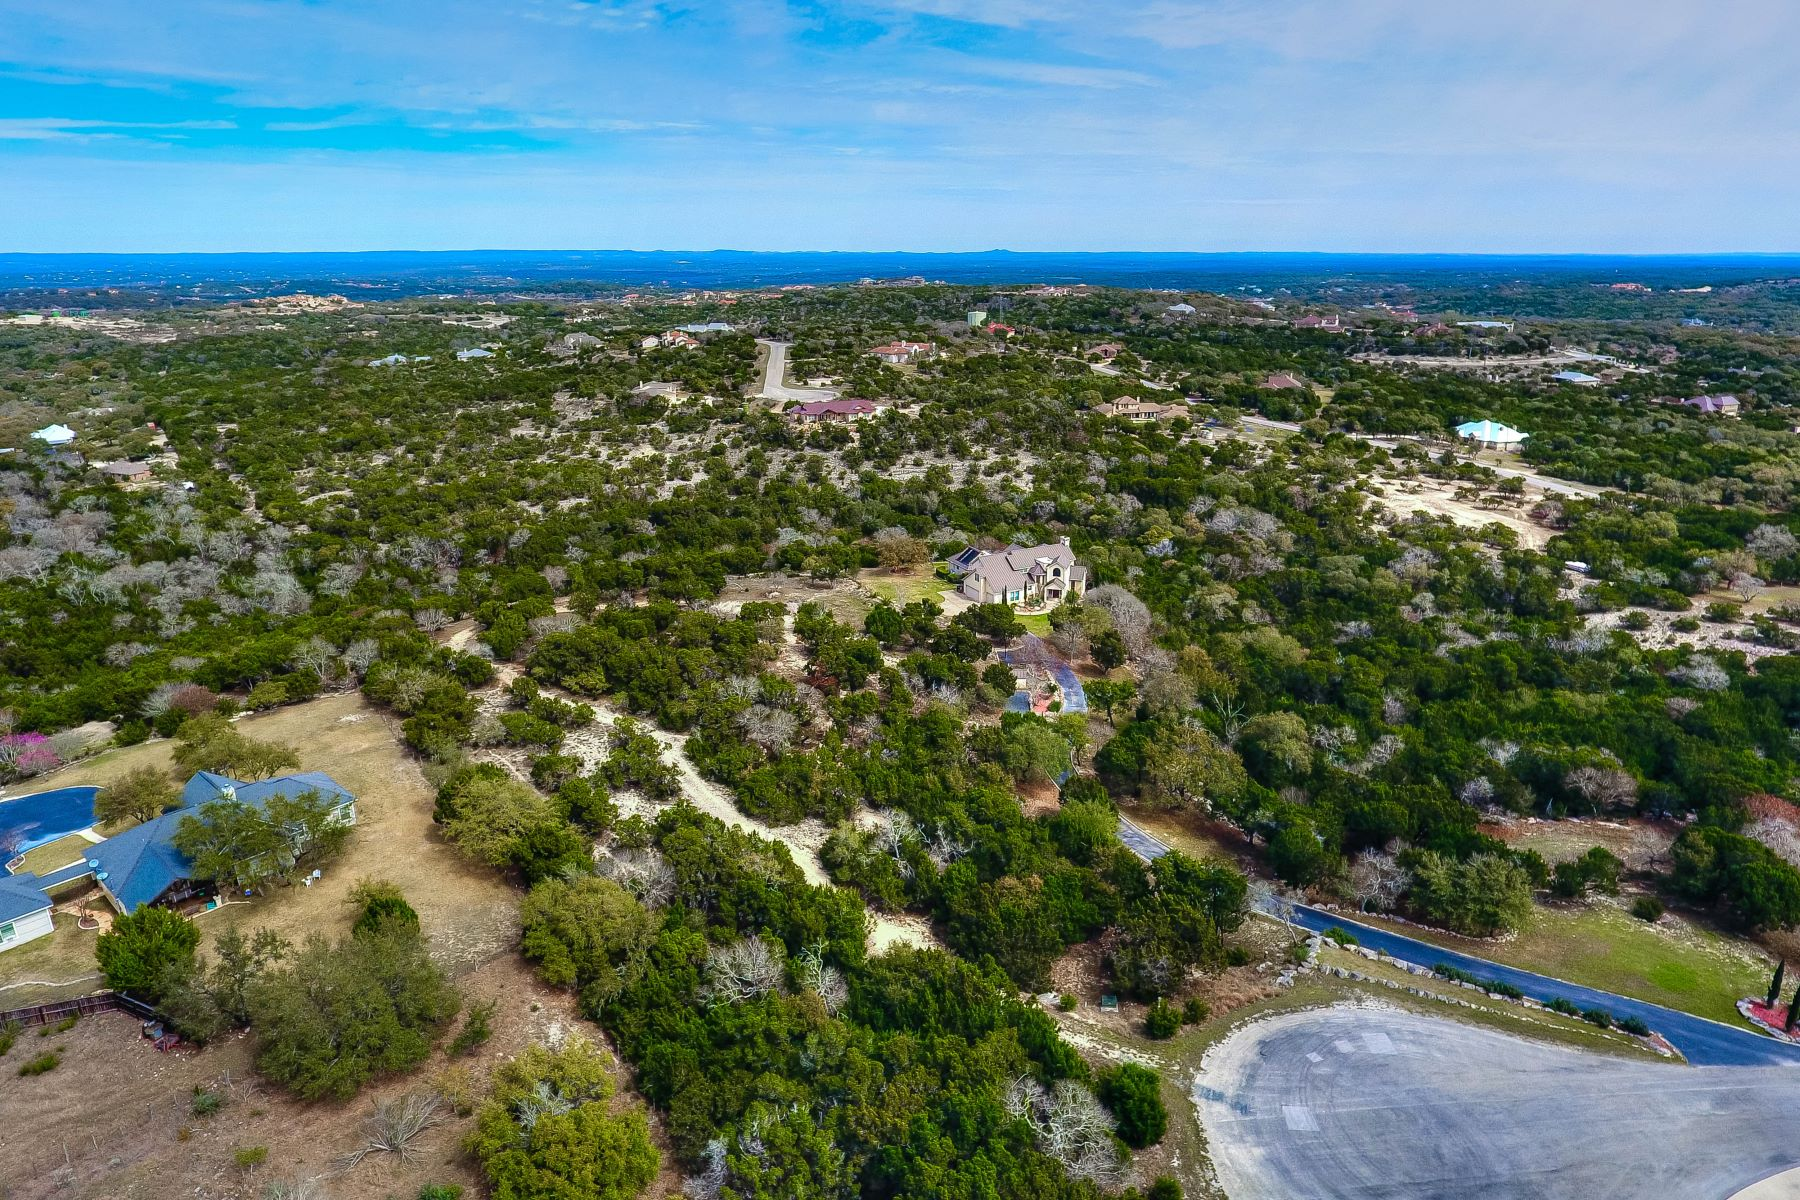 Land for Sale at Five Acres with Hill Country Views Lot 38 Outlook Pt Boerne, Texas 78006 United States